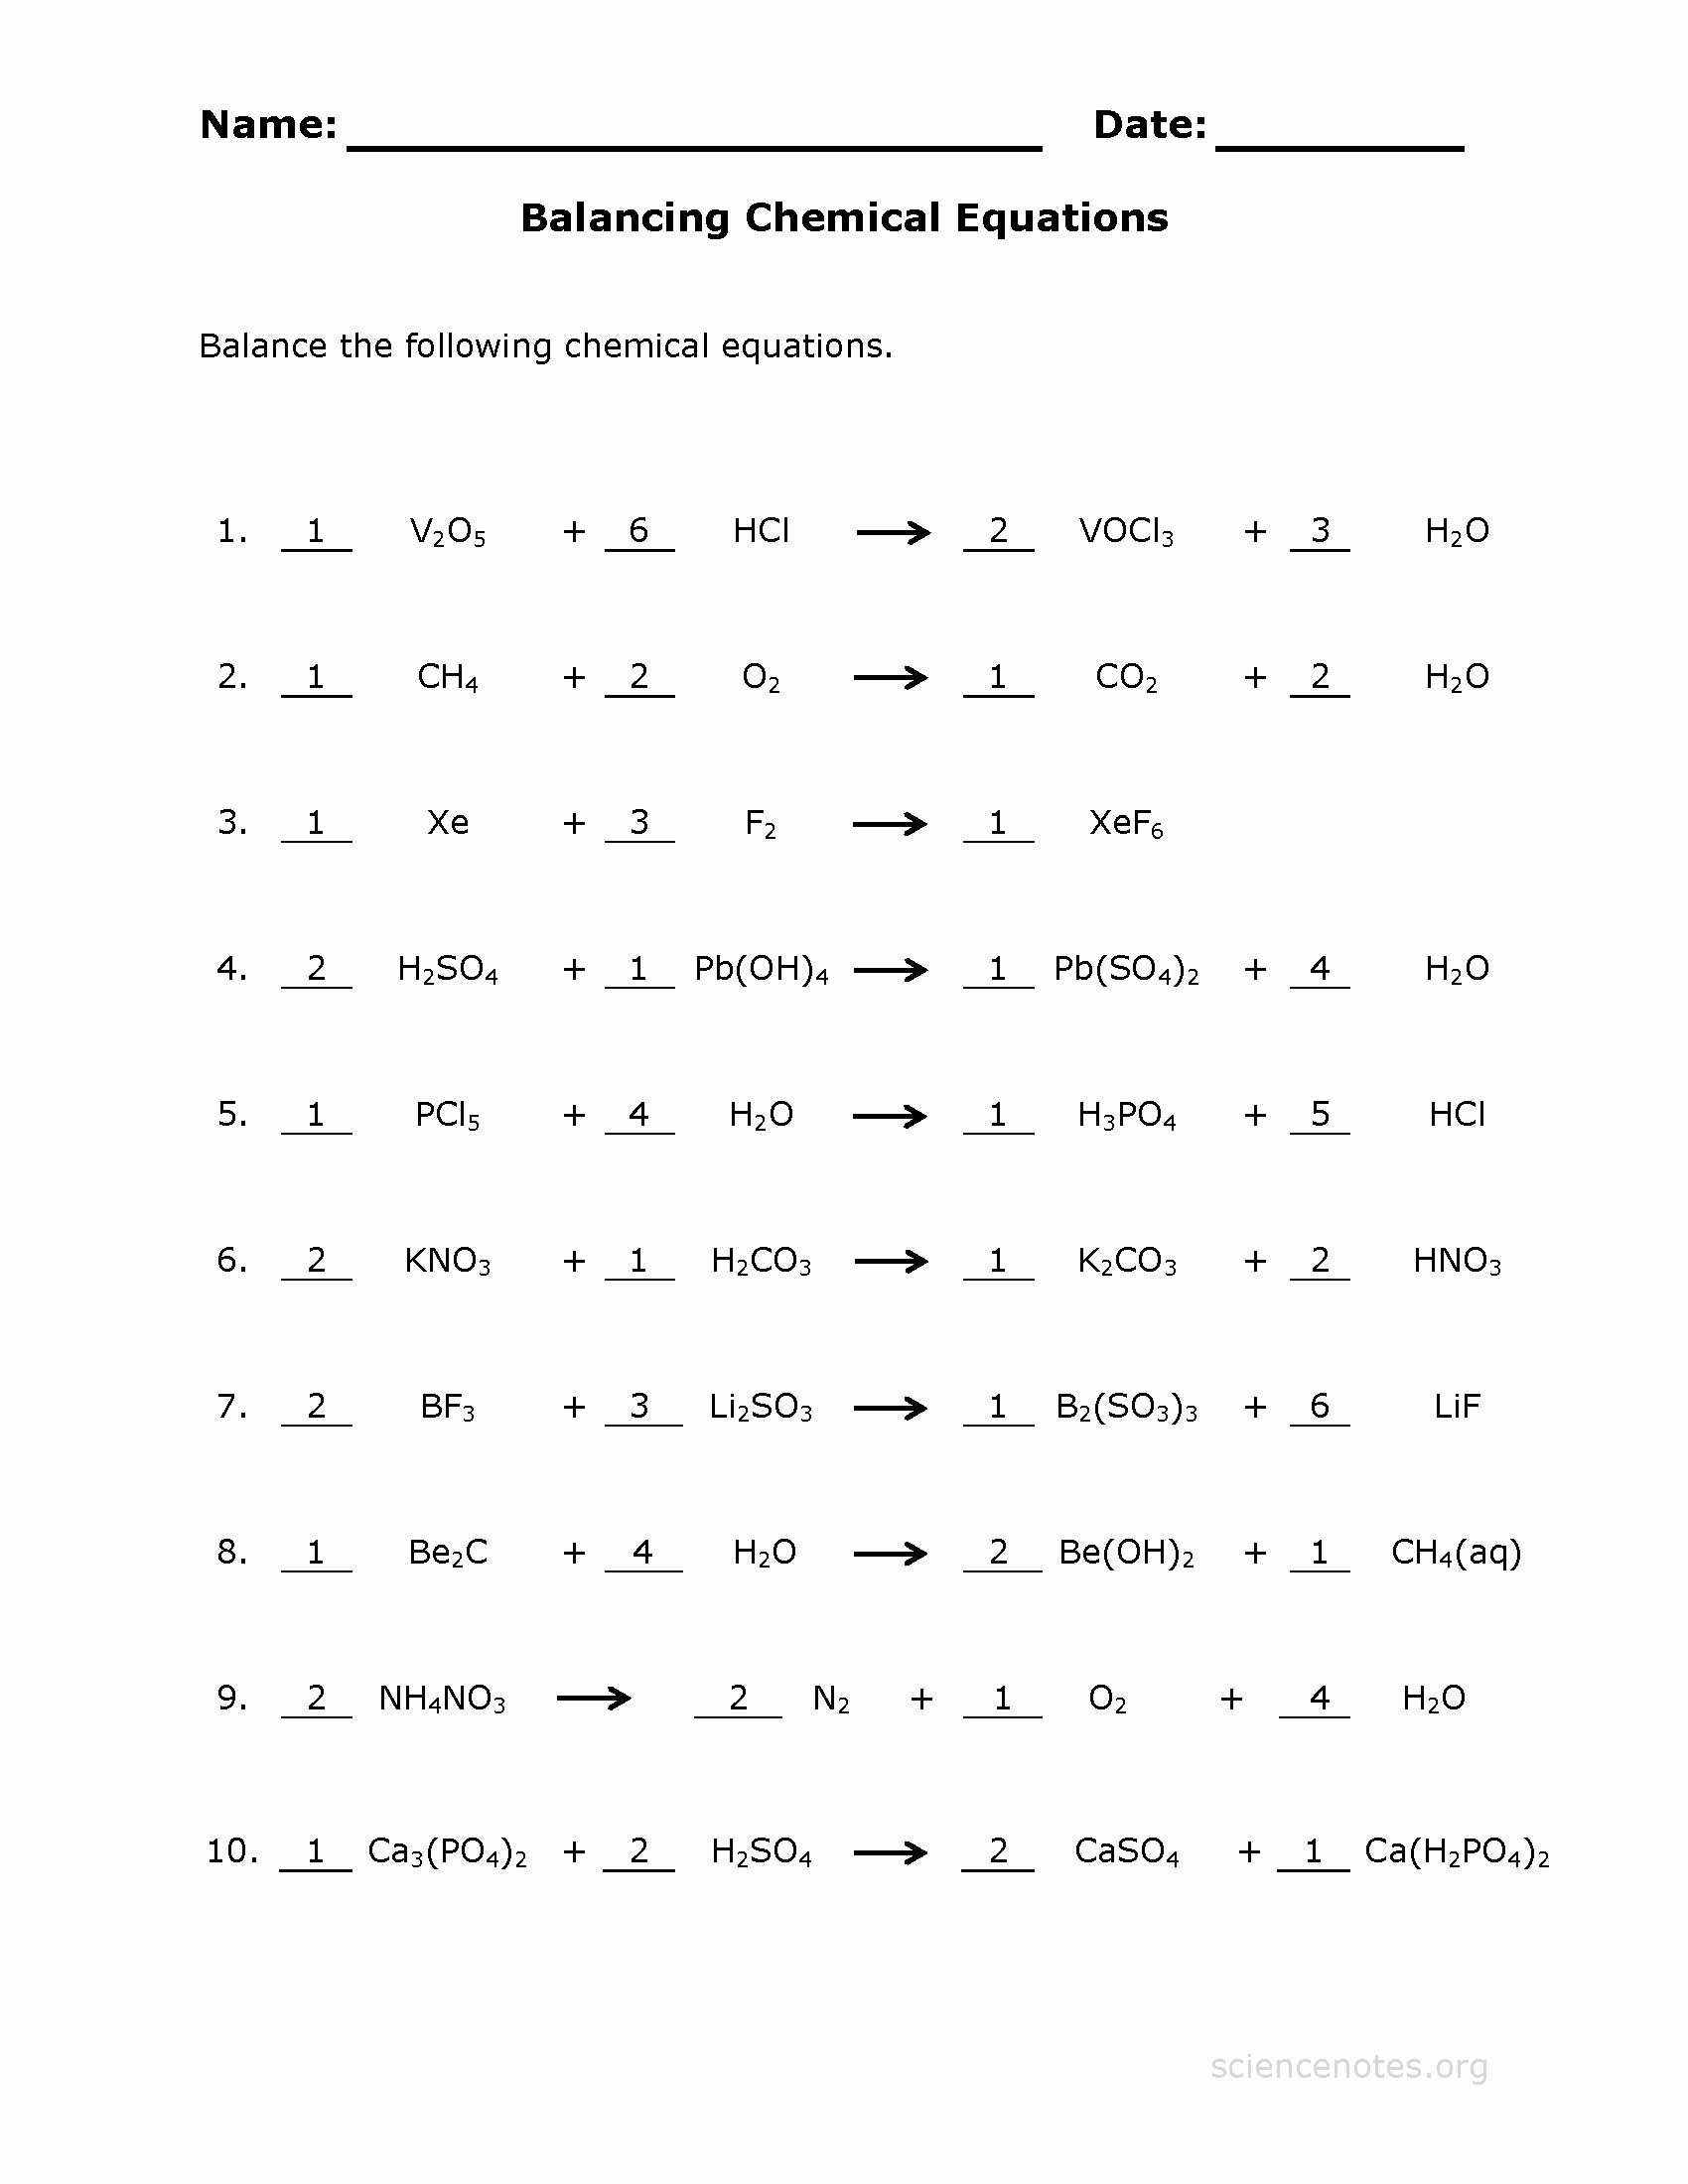 Chemical Reactions Worksheet Answers Inspirational Balance Chemical Equations Worksheet 3 Answer Key